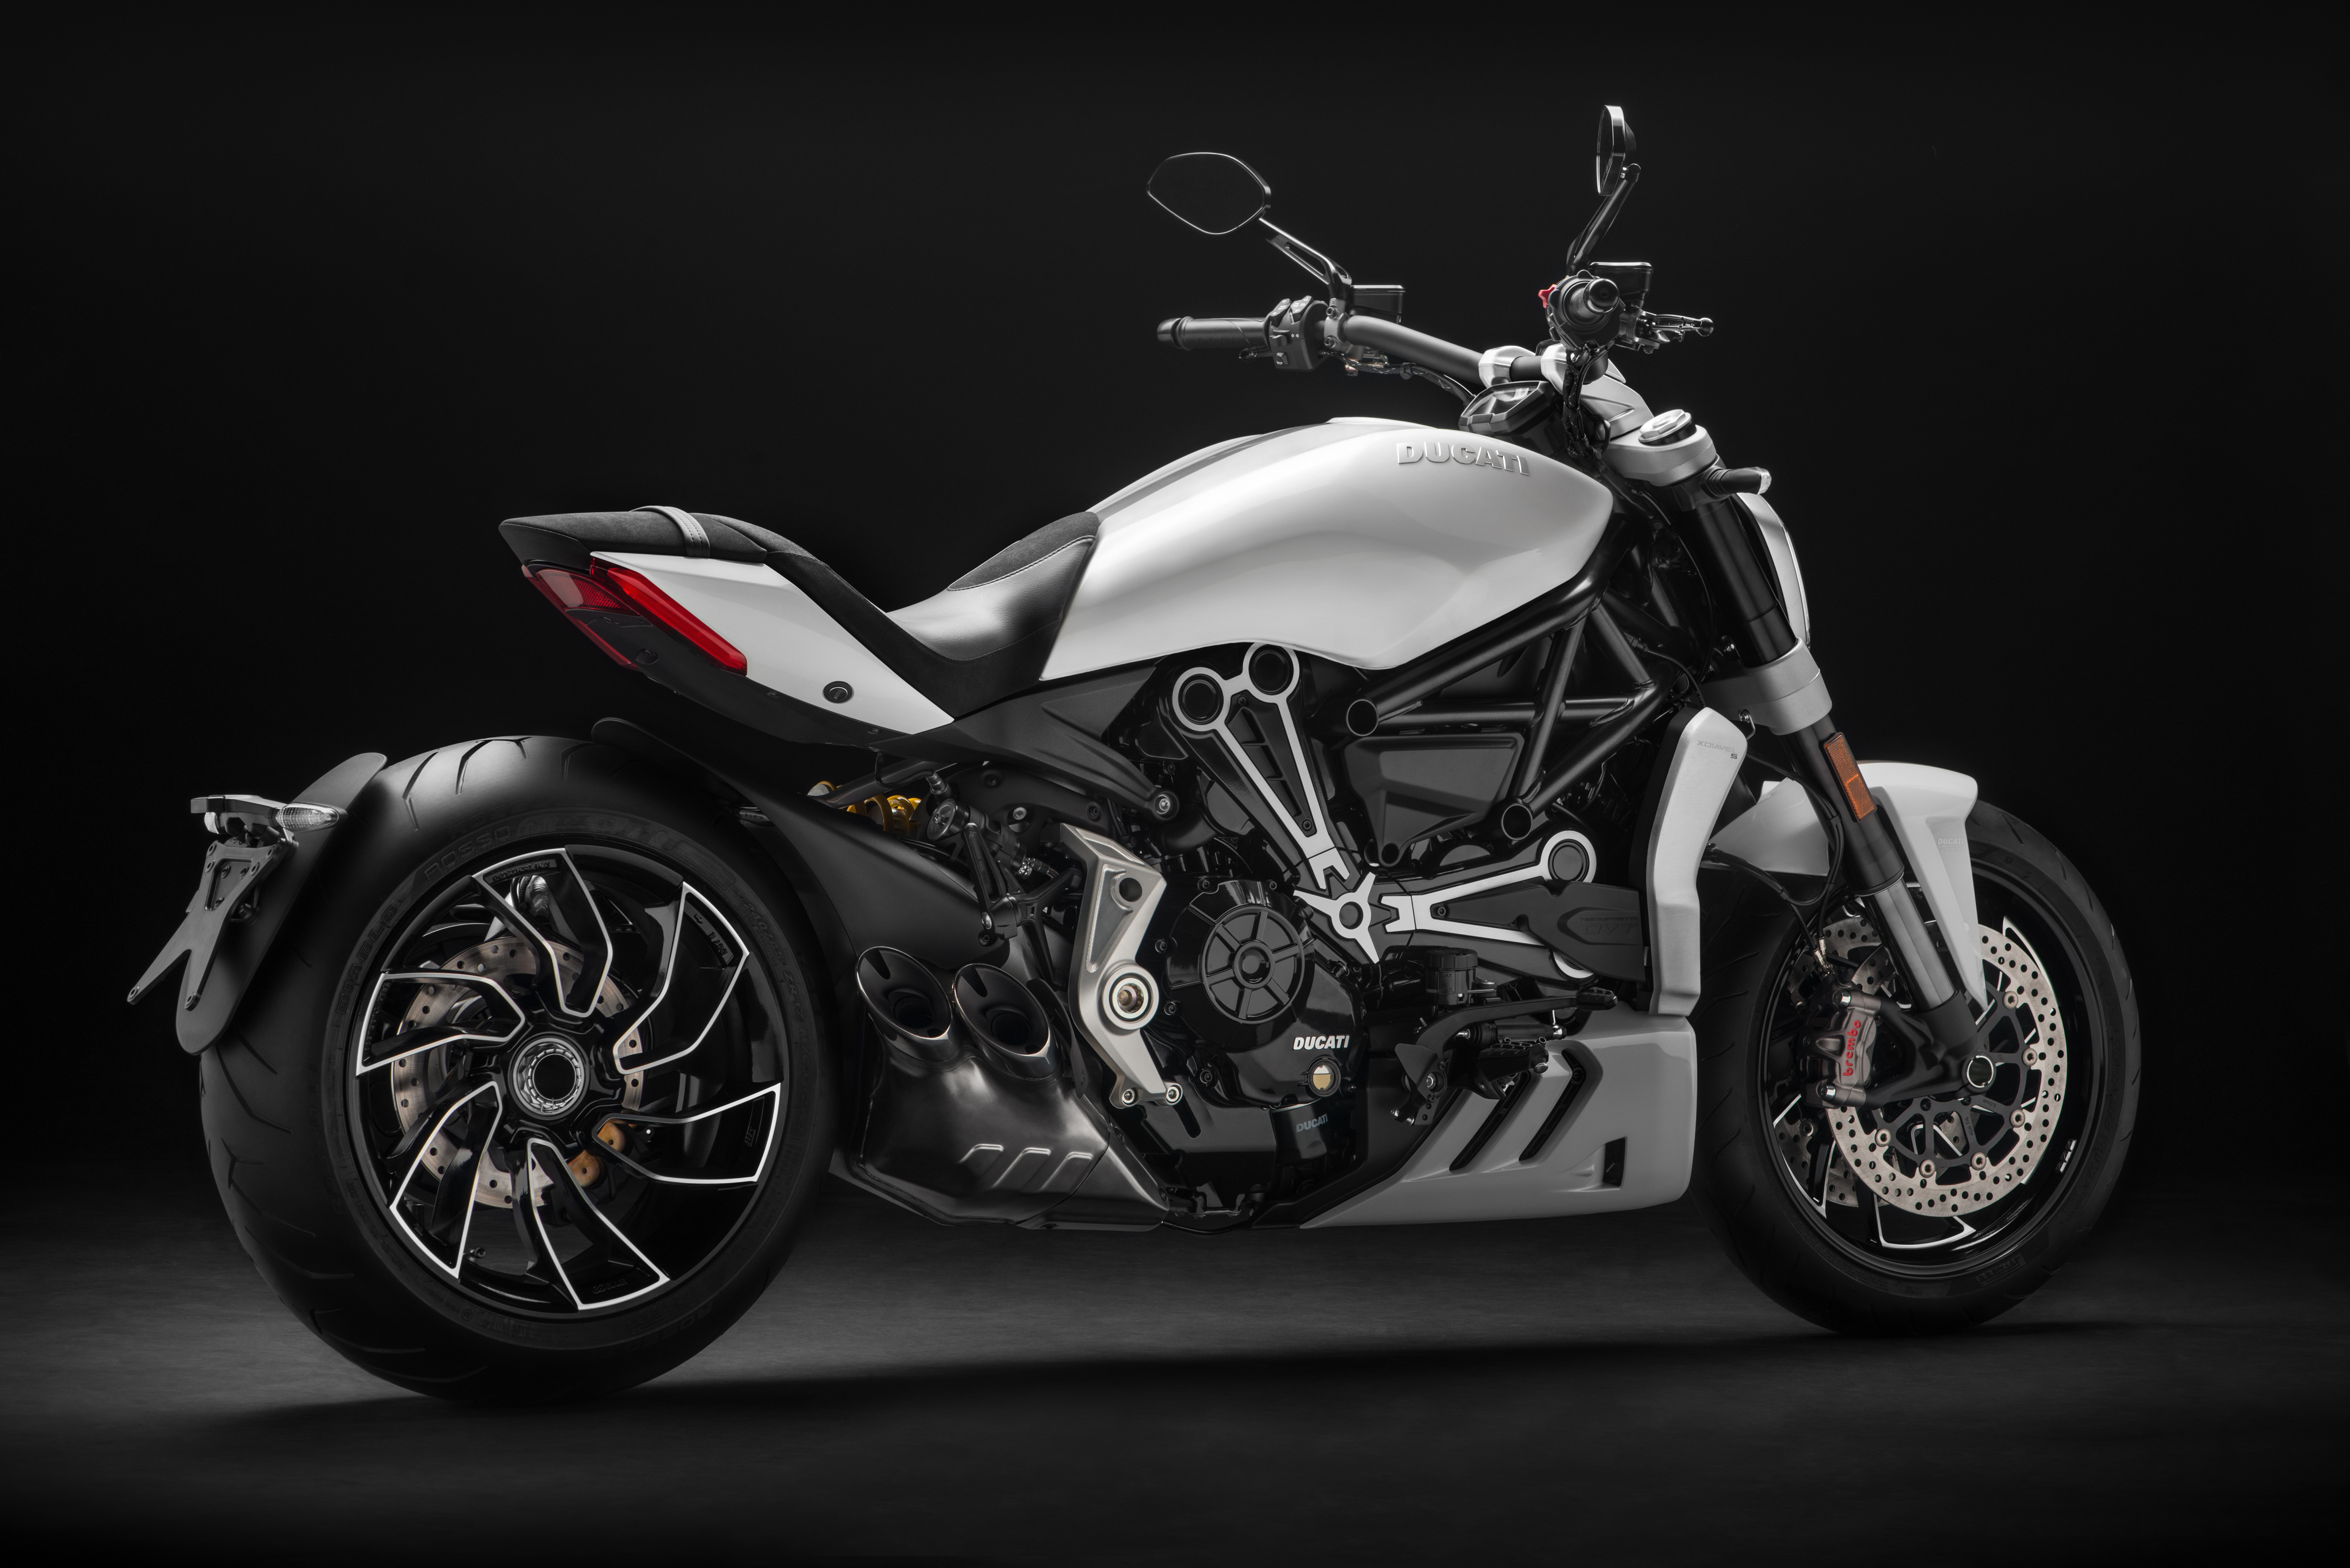 ducati to debut six new 2018 motorcycles at long beach show. Black Bedroom Furniture Sets. Home Design Ideas